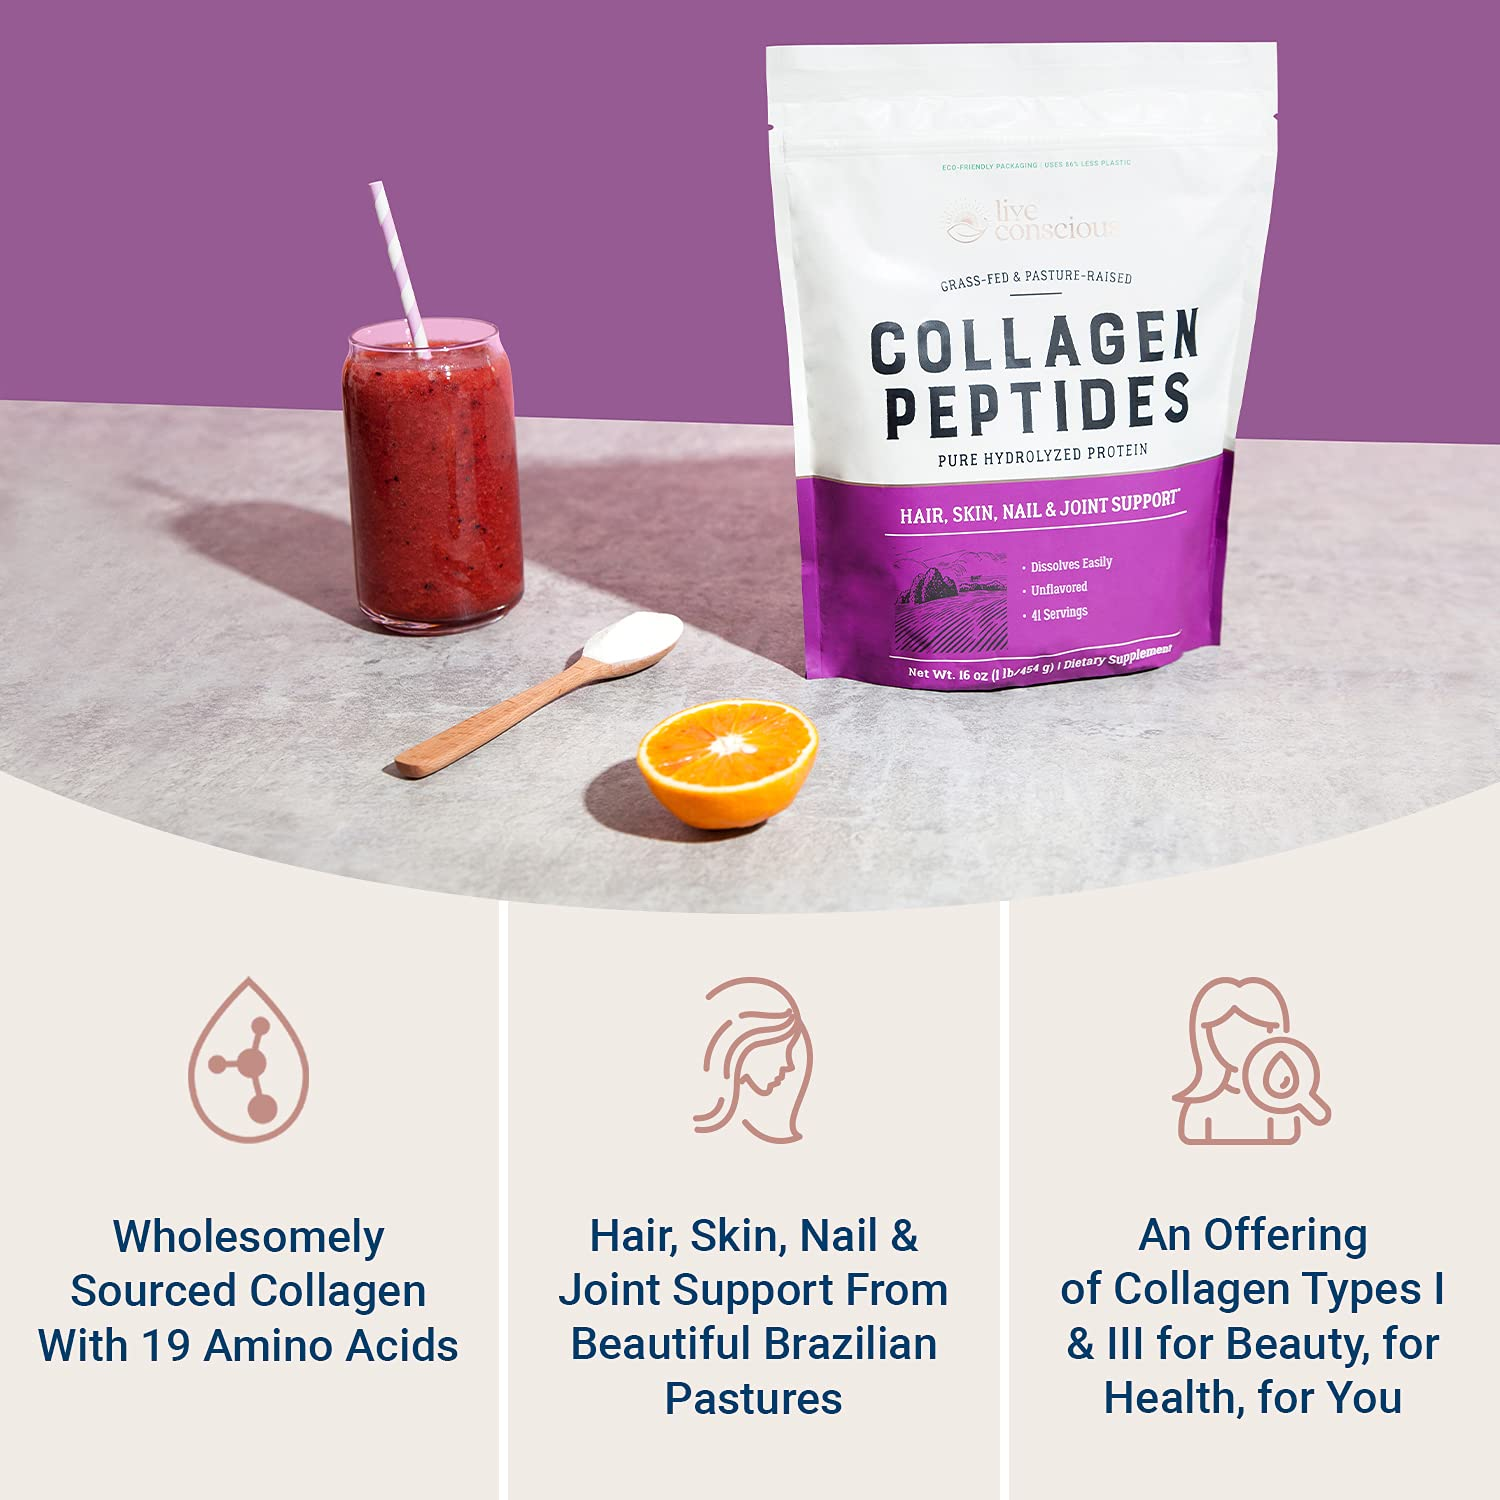 Collagen Peptides Powder - Hair, Skin, Nail, and Joint Support - Type I & III Collagen - All-Natural Hydrolyzed Protein - 41 Servings - 16oz